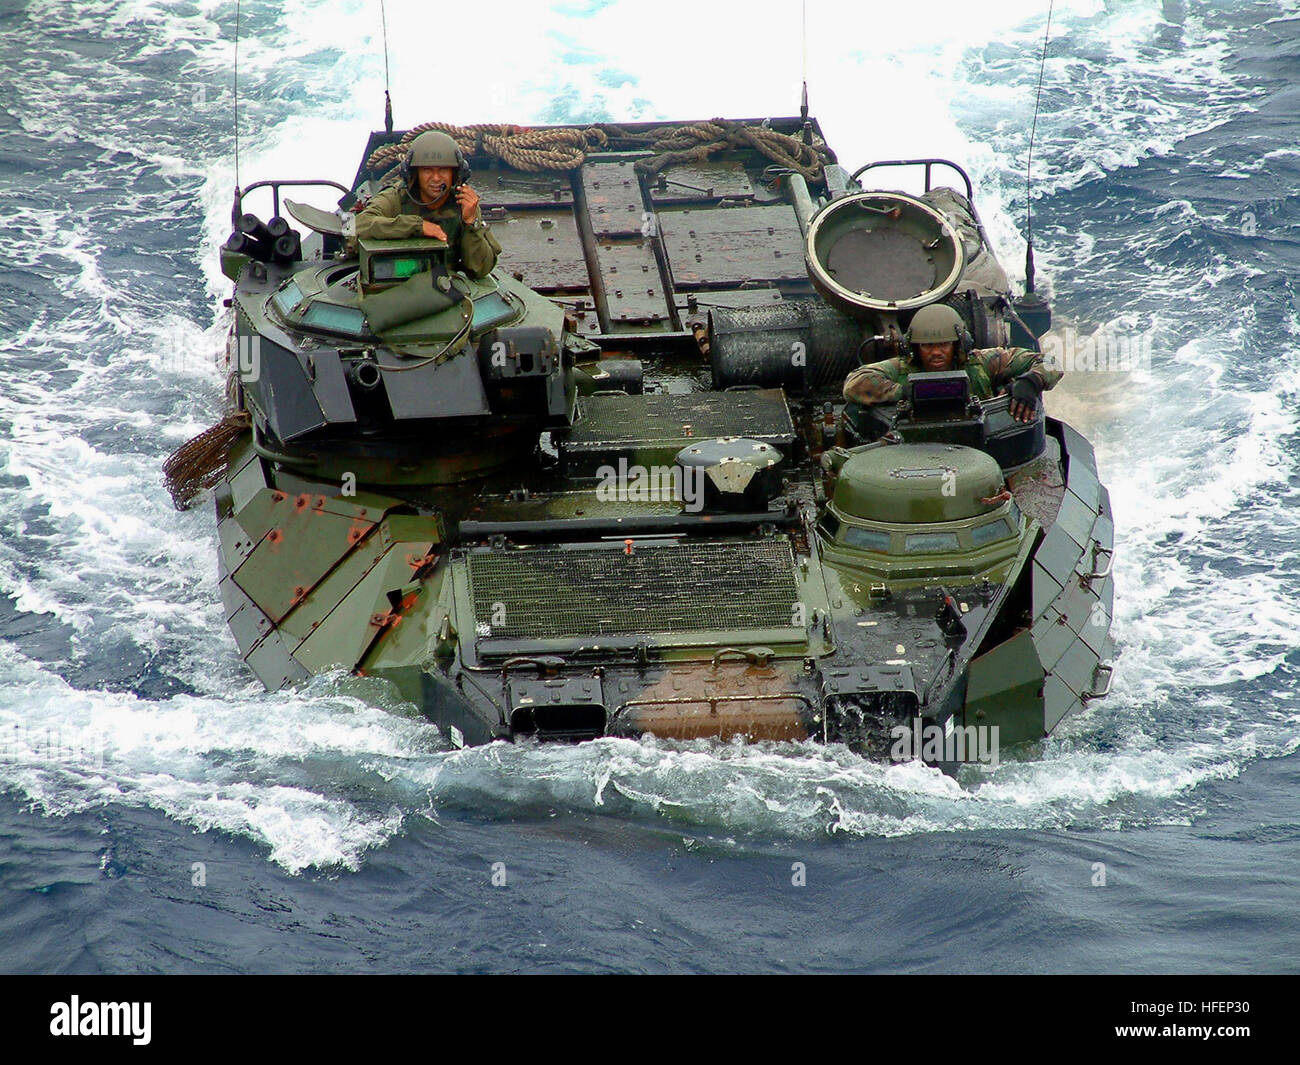 030912-N-8646S-007 Philippine Sea (Sept. 12, 2003) -- An Amphibious Assault Vehicle (AAV) launched from the amphibious Stock Photo